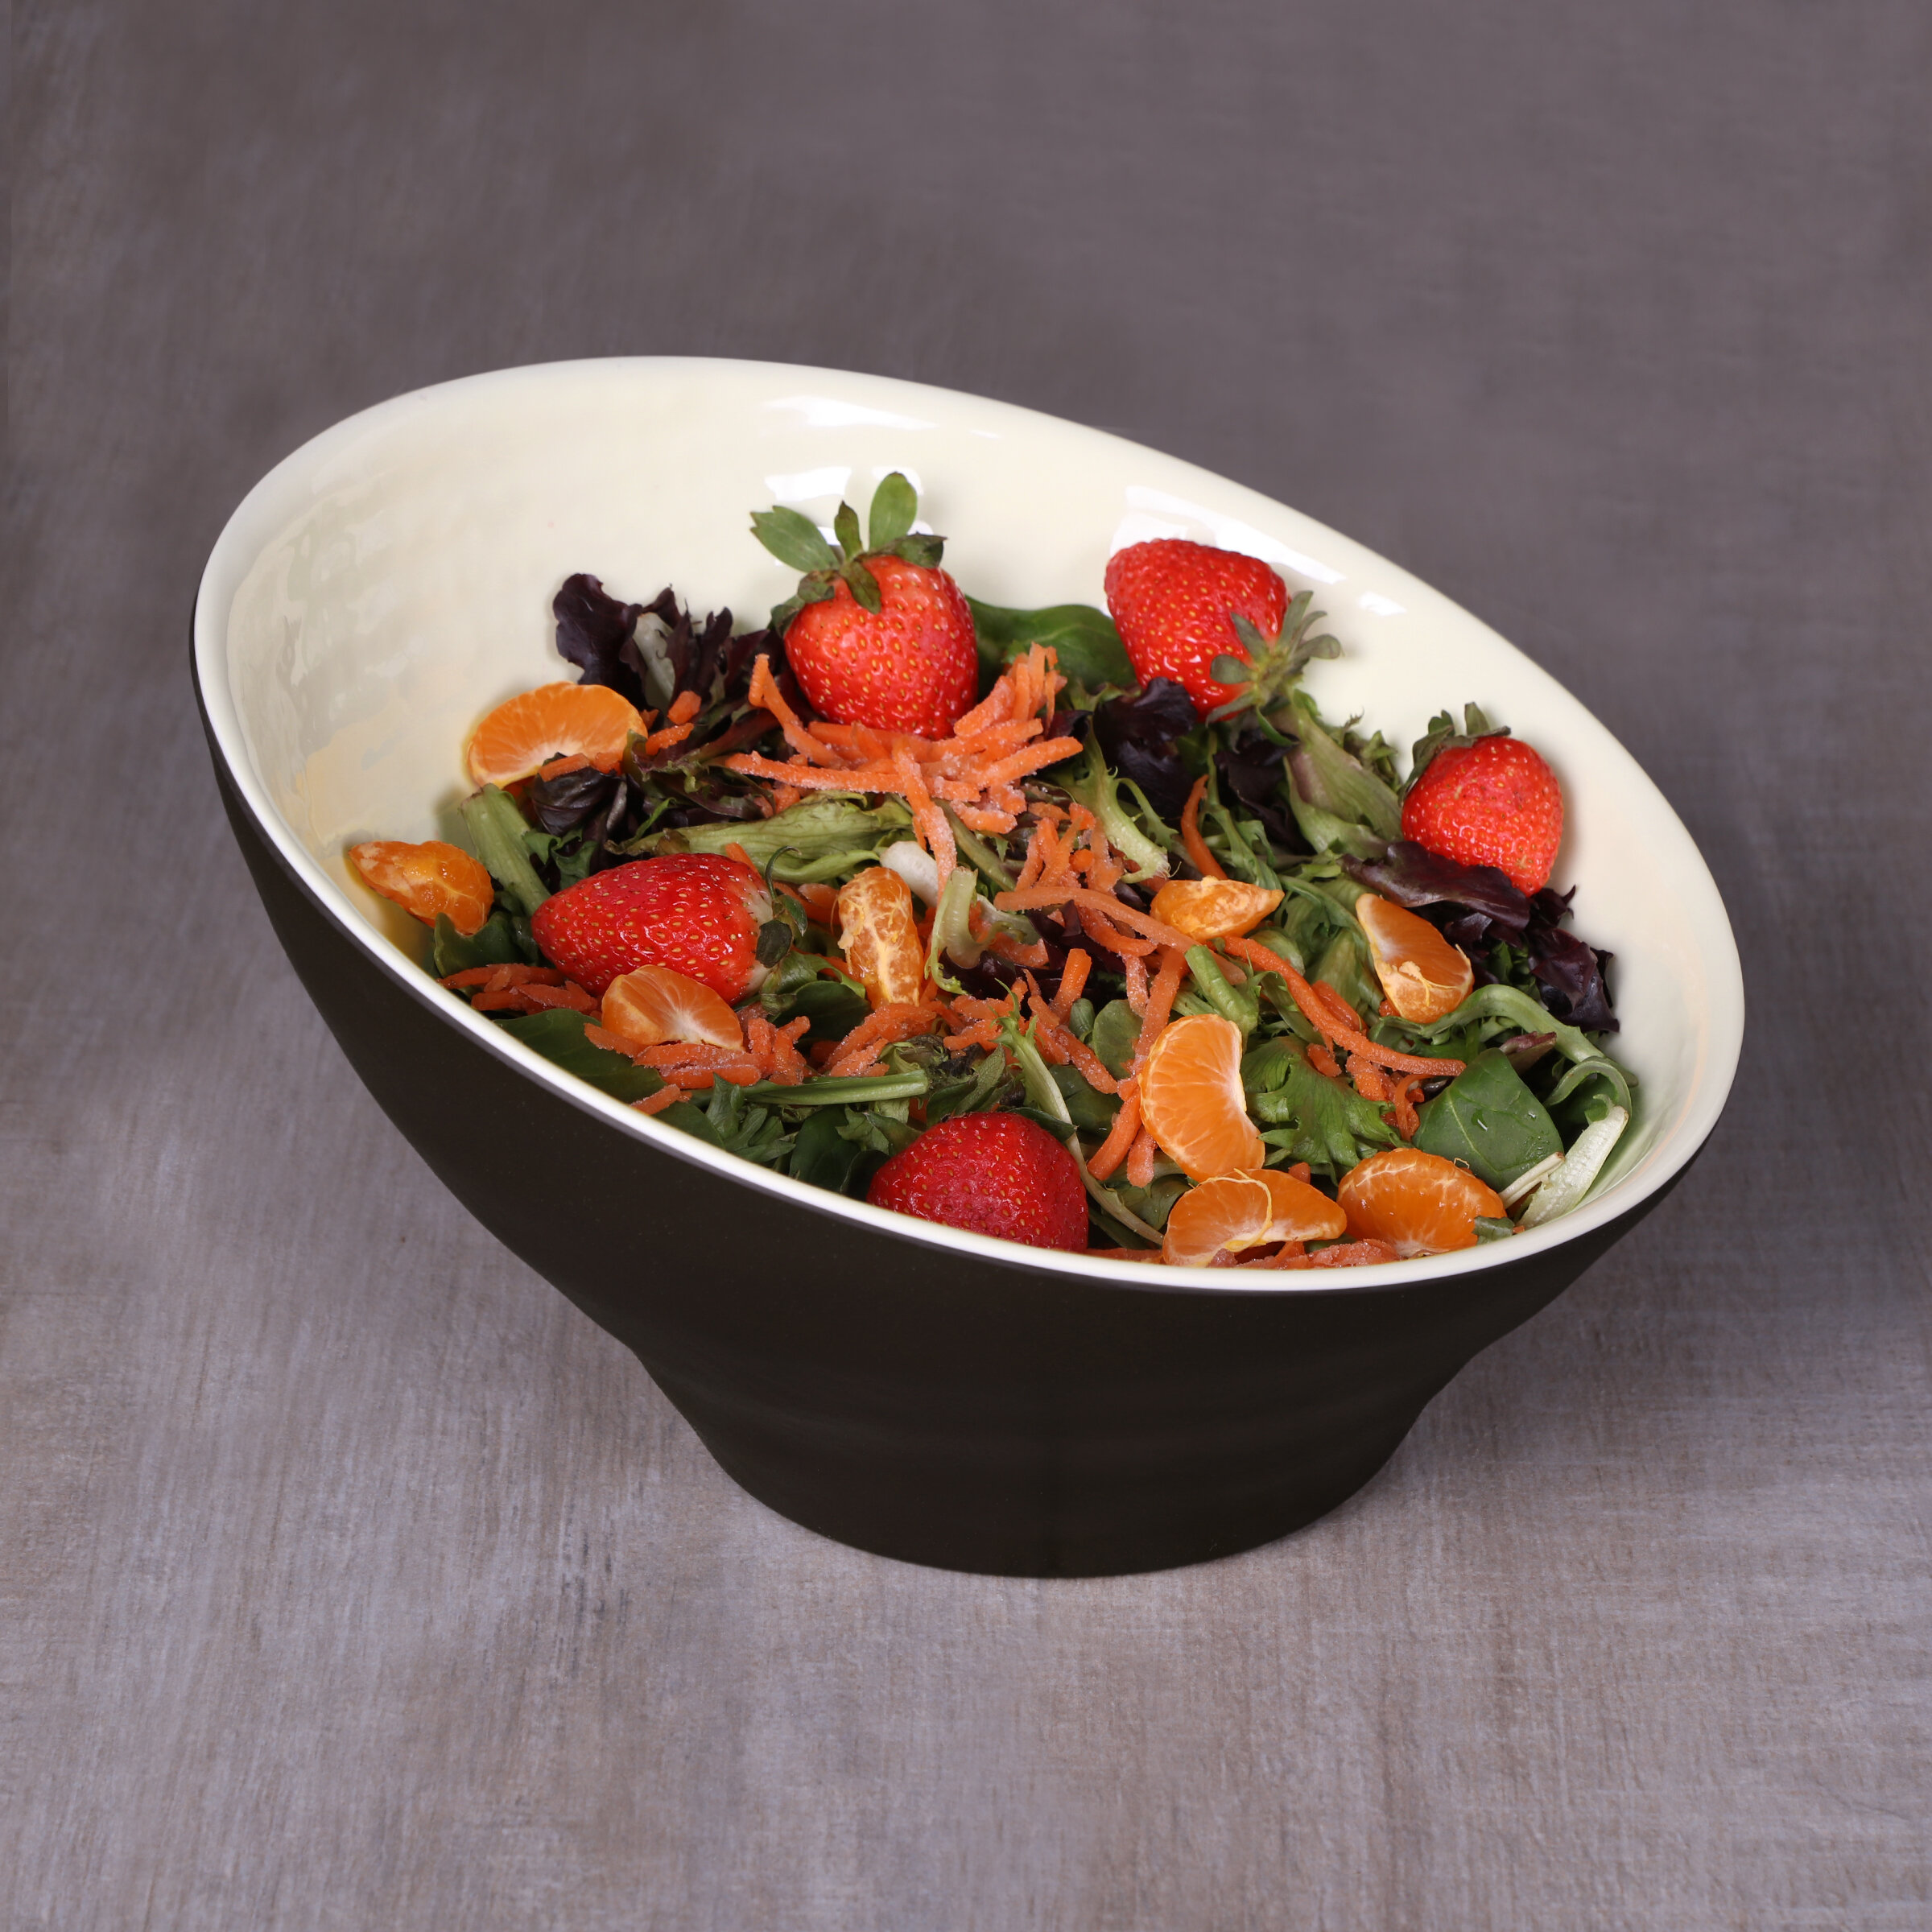 Elite Global Solutions Durango Melamine 50 Fl Oz Salad Bowl Wayfair